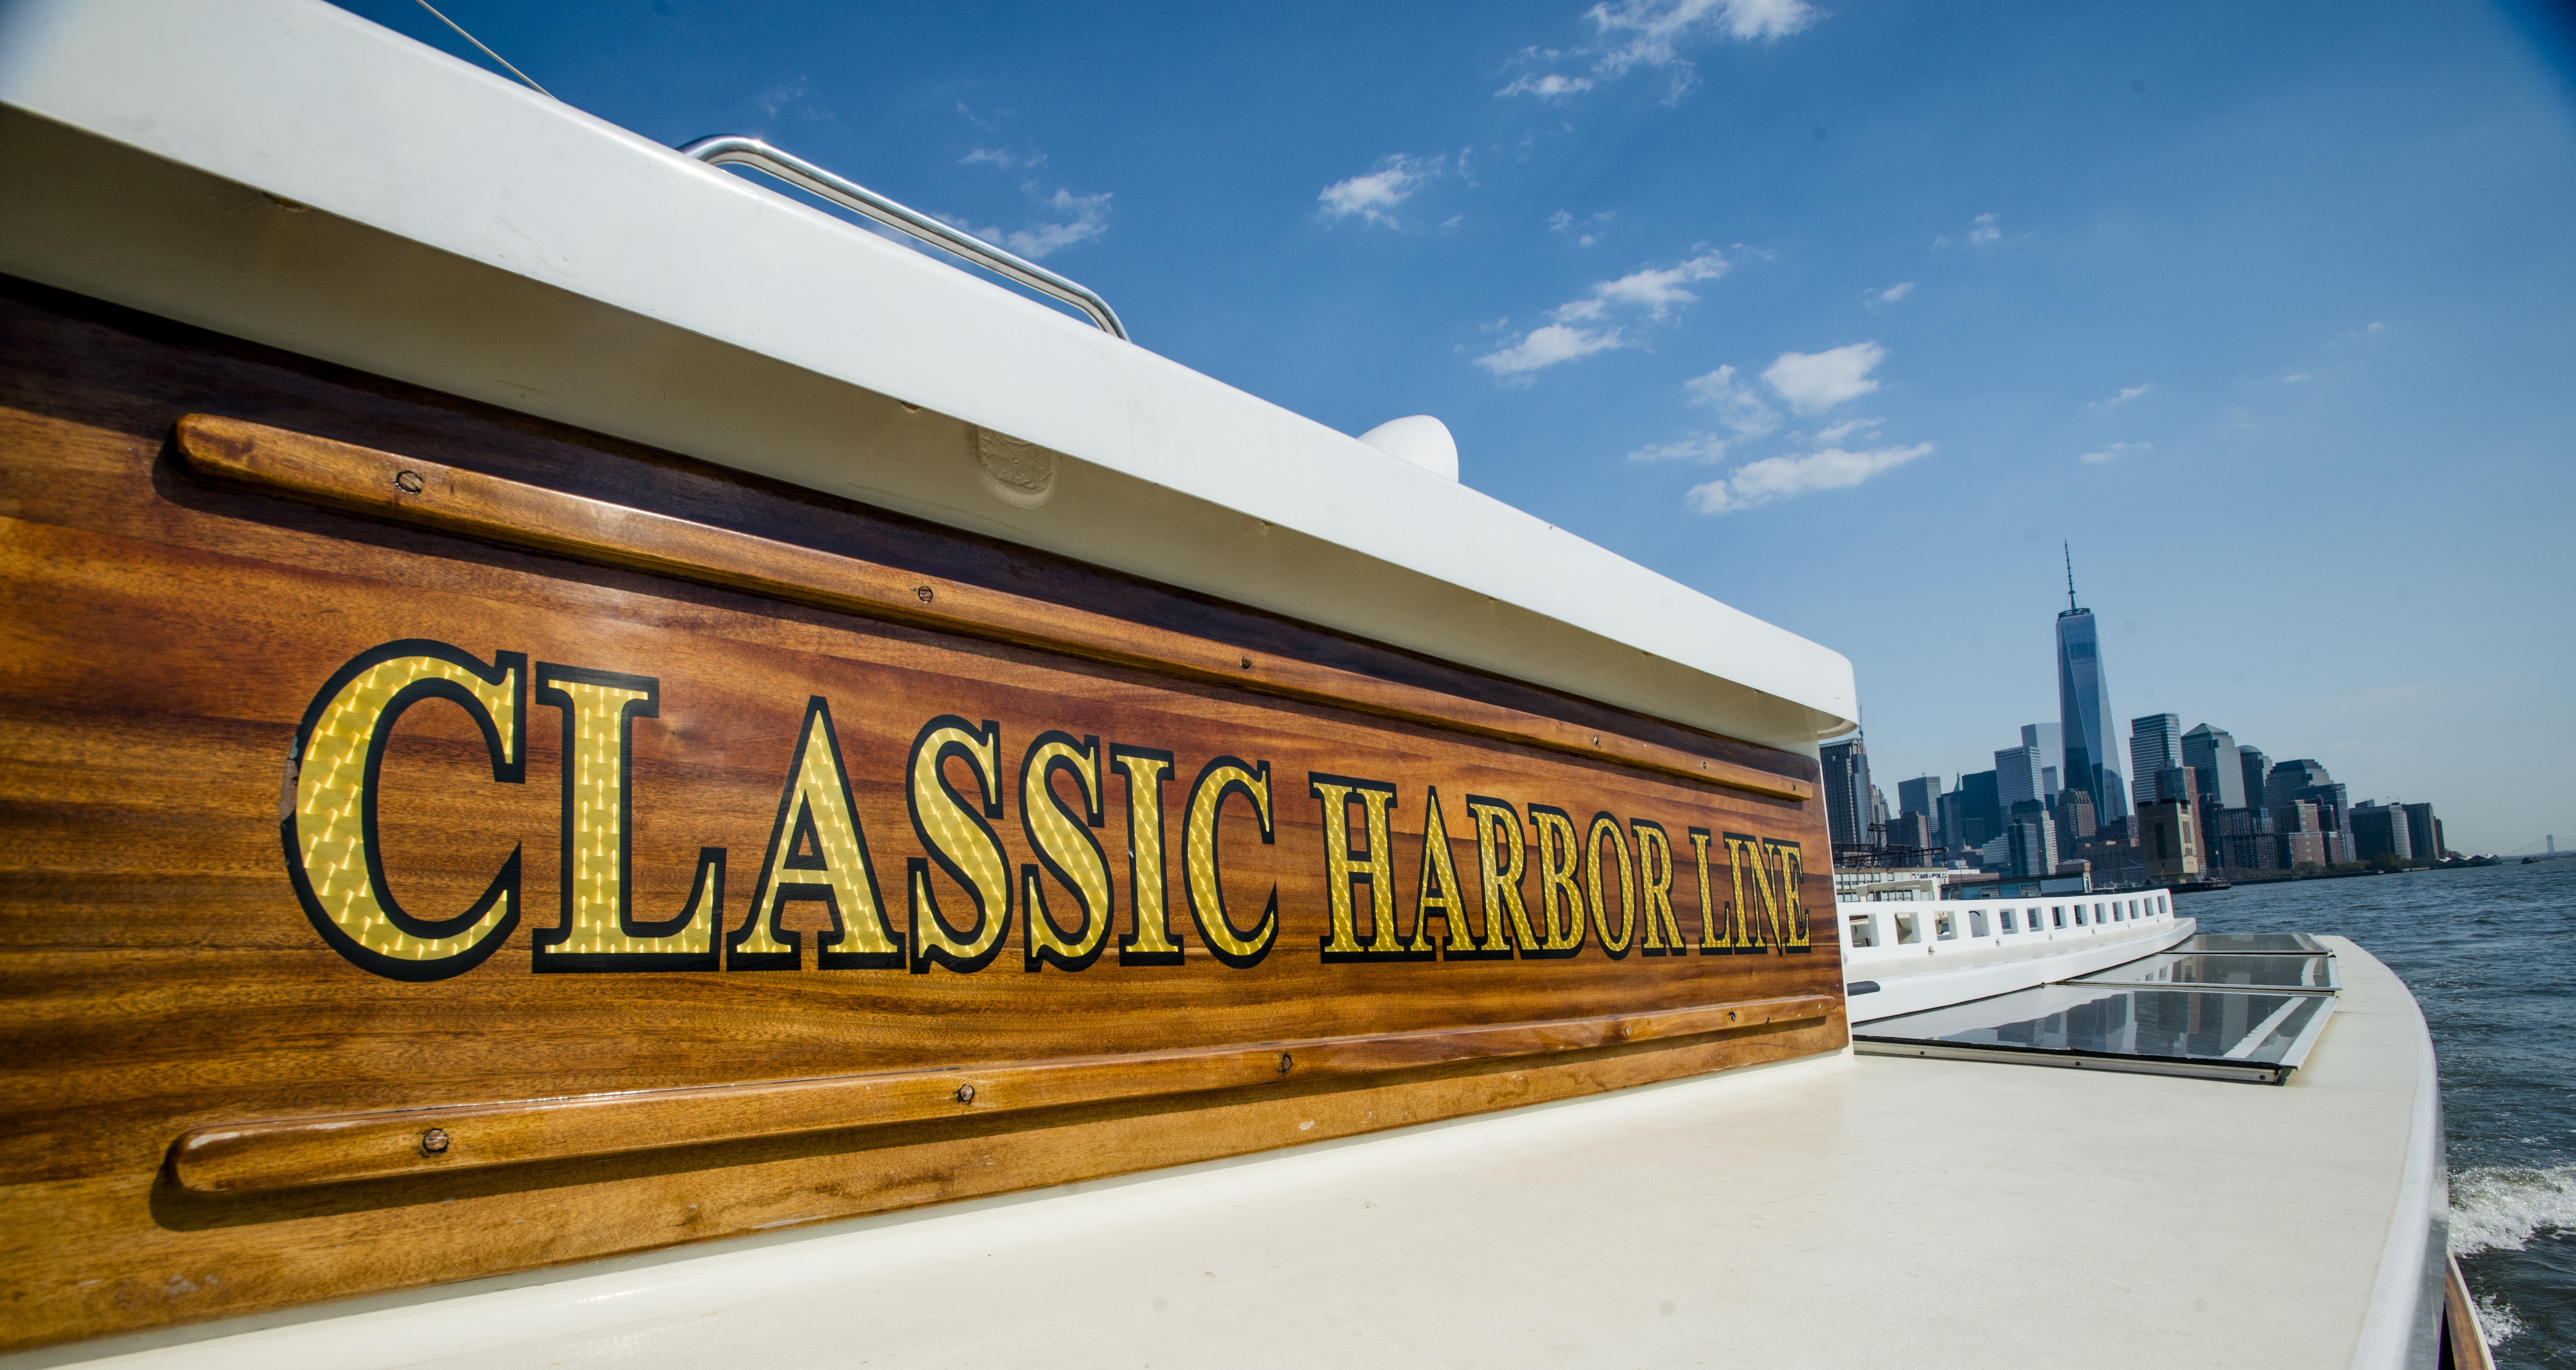 Classic Harbor Line New York reviews | 62 Chelsea Piers Suite 103 - New York NY